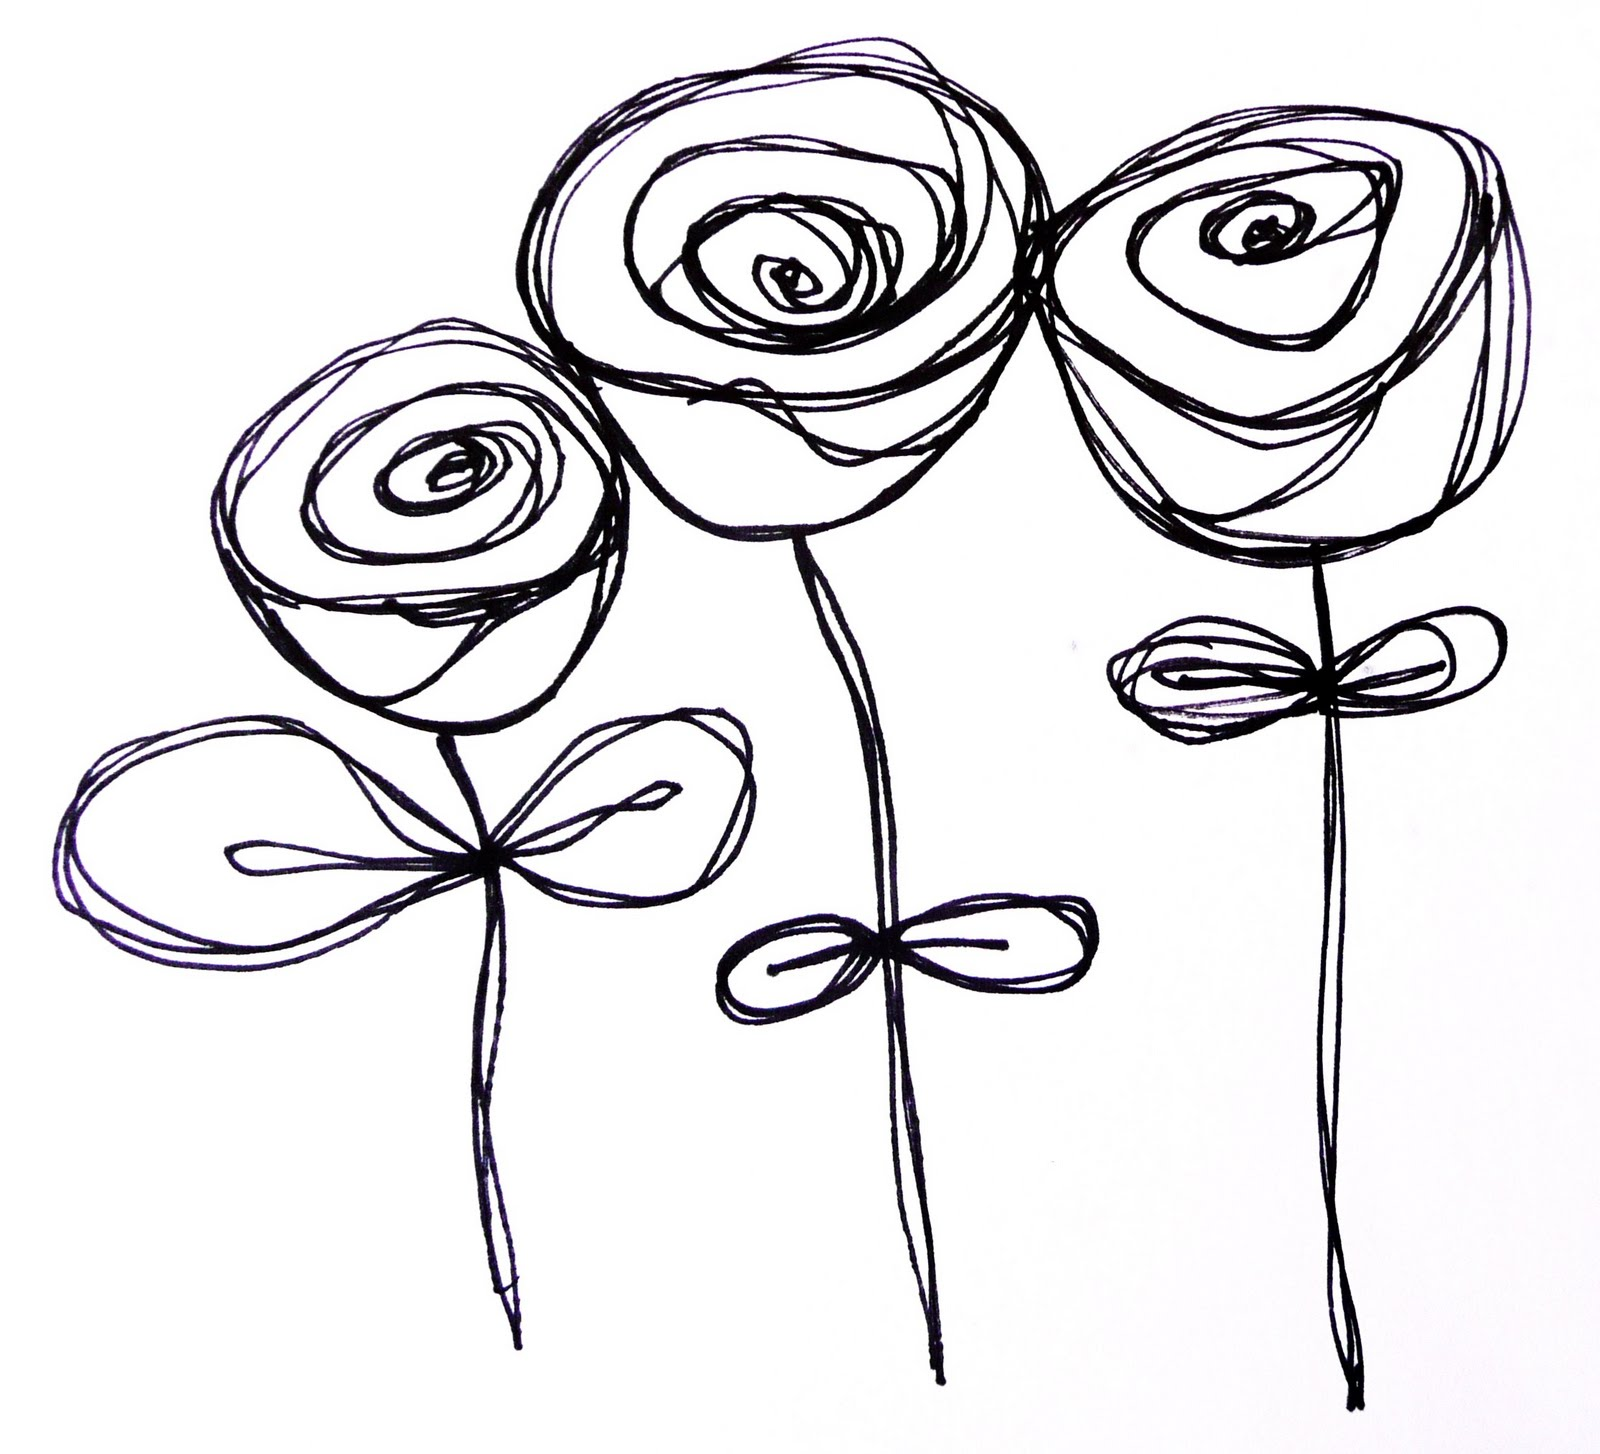 Line Drawing Of Rose Flower : Art by erin leigh doodles continued